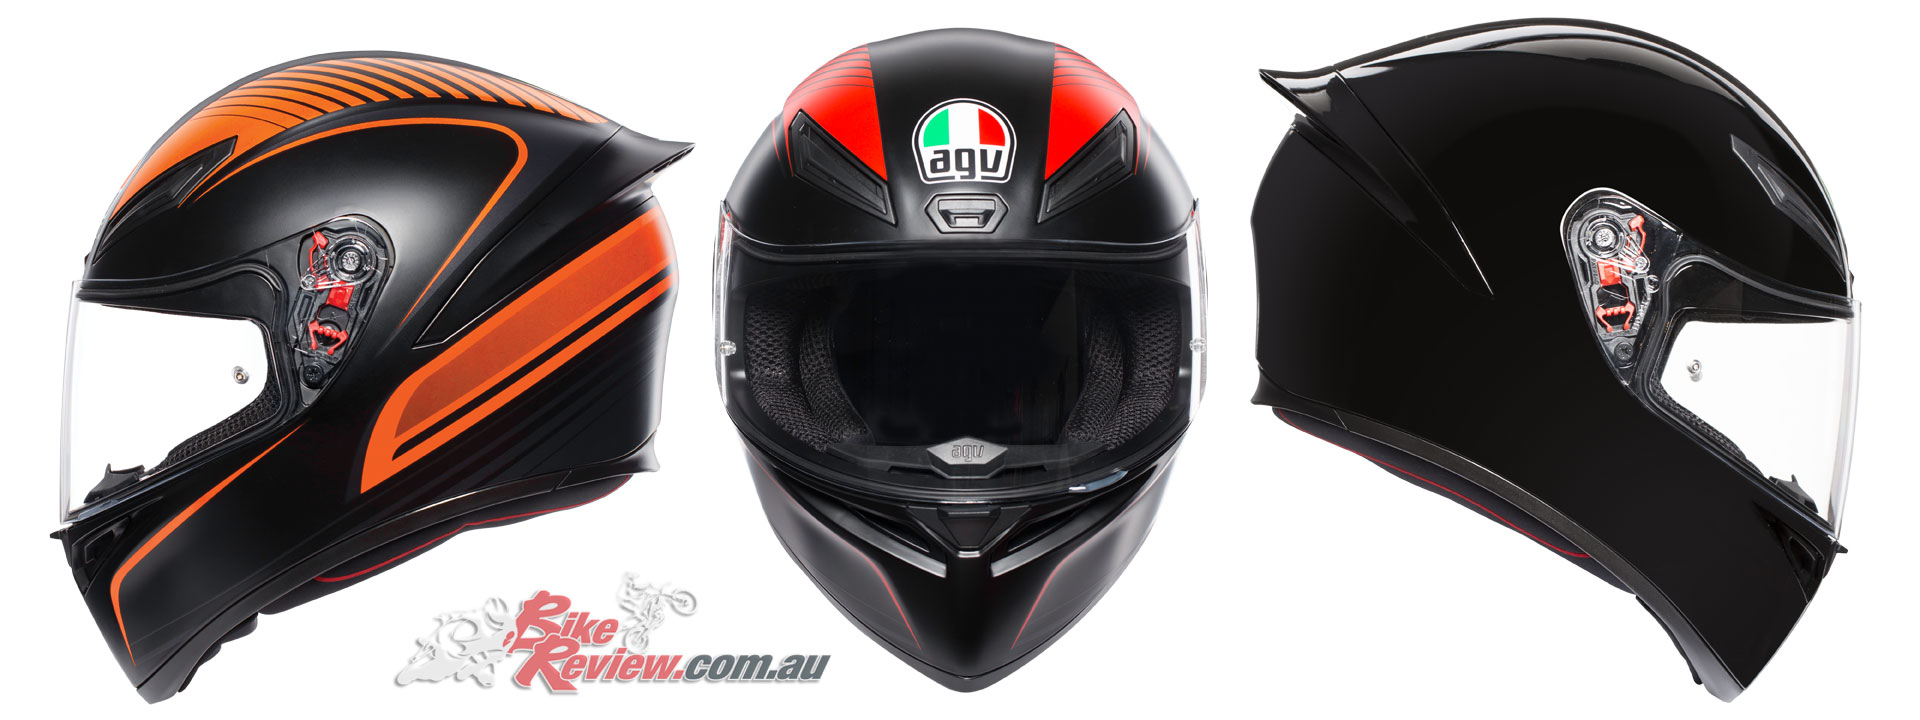 AGV K-1 Helmet - Warmup Black Orange, Warmup Black Red, Black